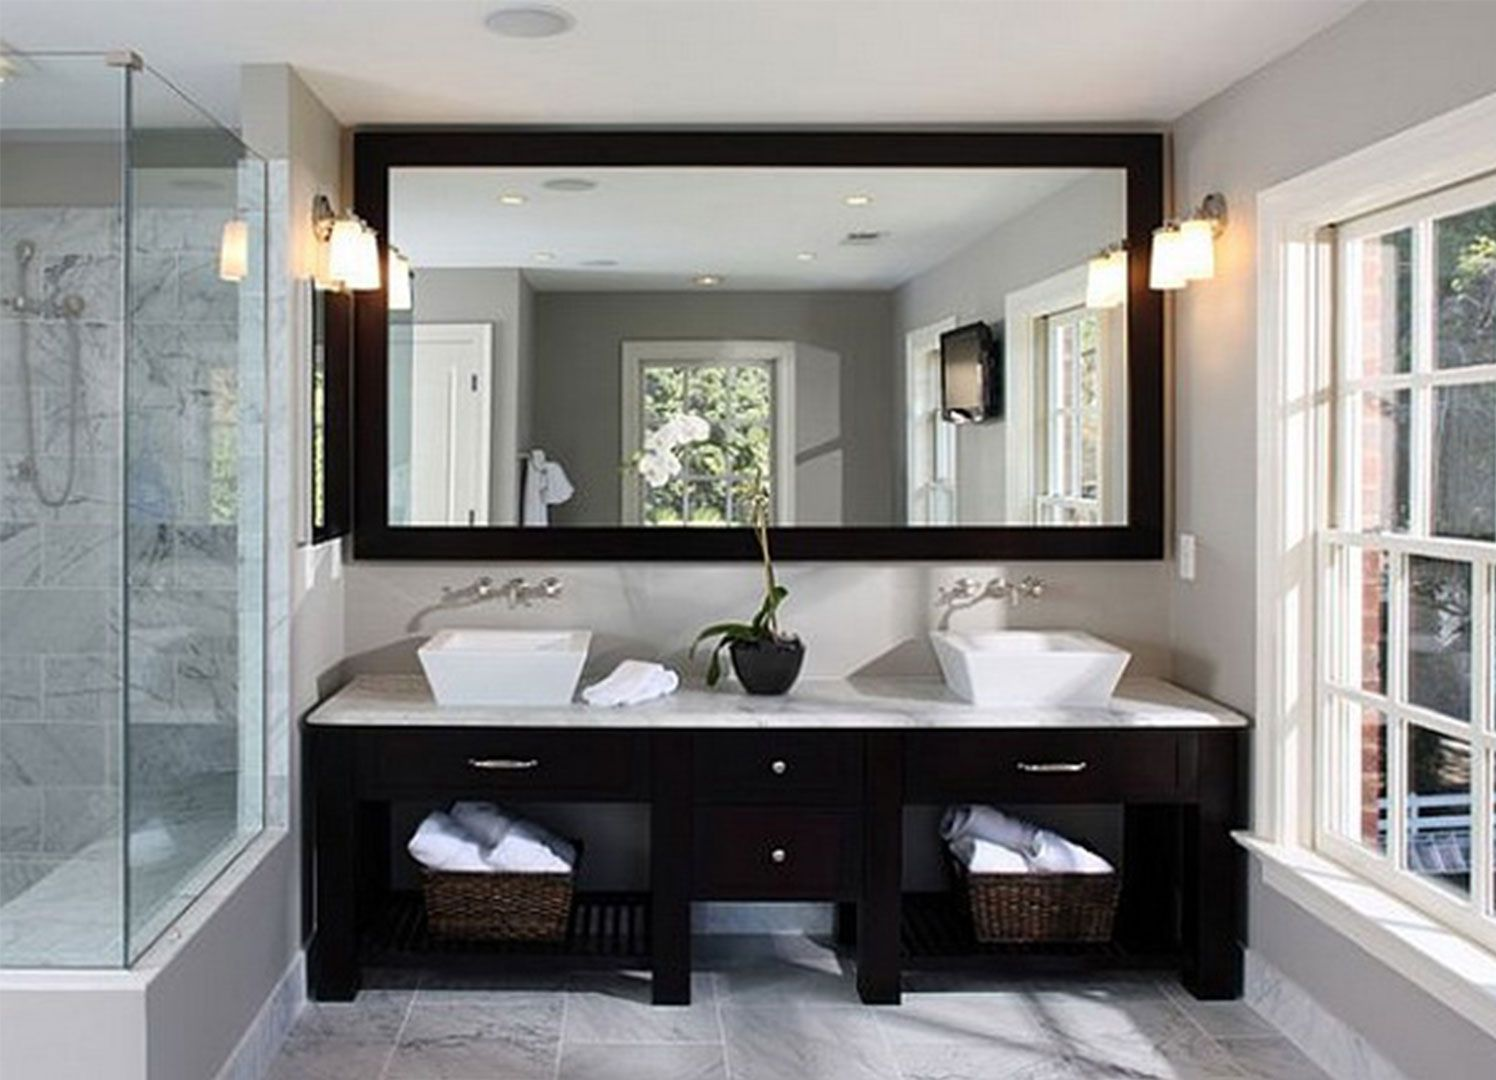 Colored Wall Bathroom Ideas Line Black Models Cabinet Bathroom Design Wide French Window Wide Square Mirror A Couple Of Orange Chandeliar Learning The